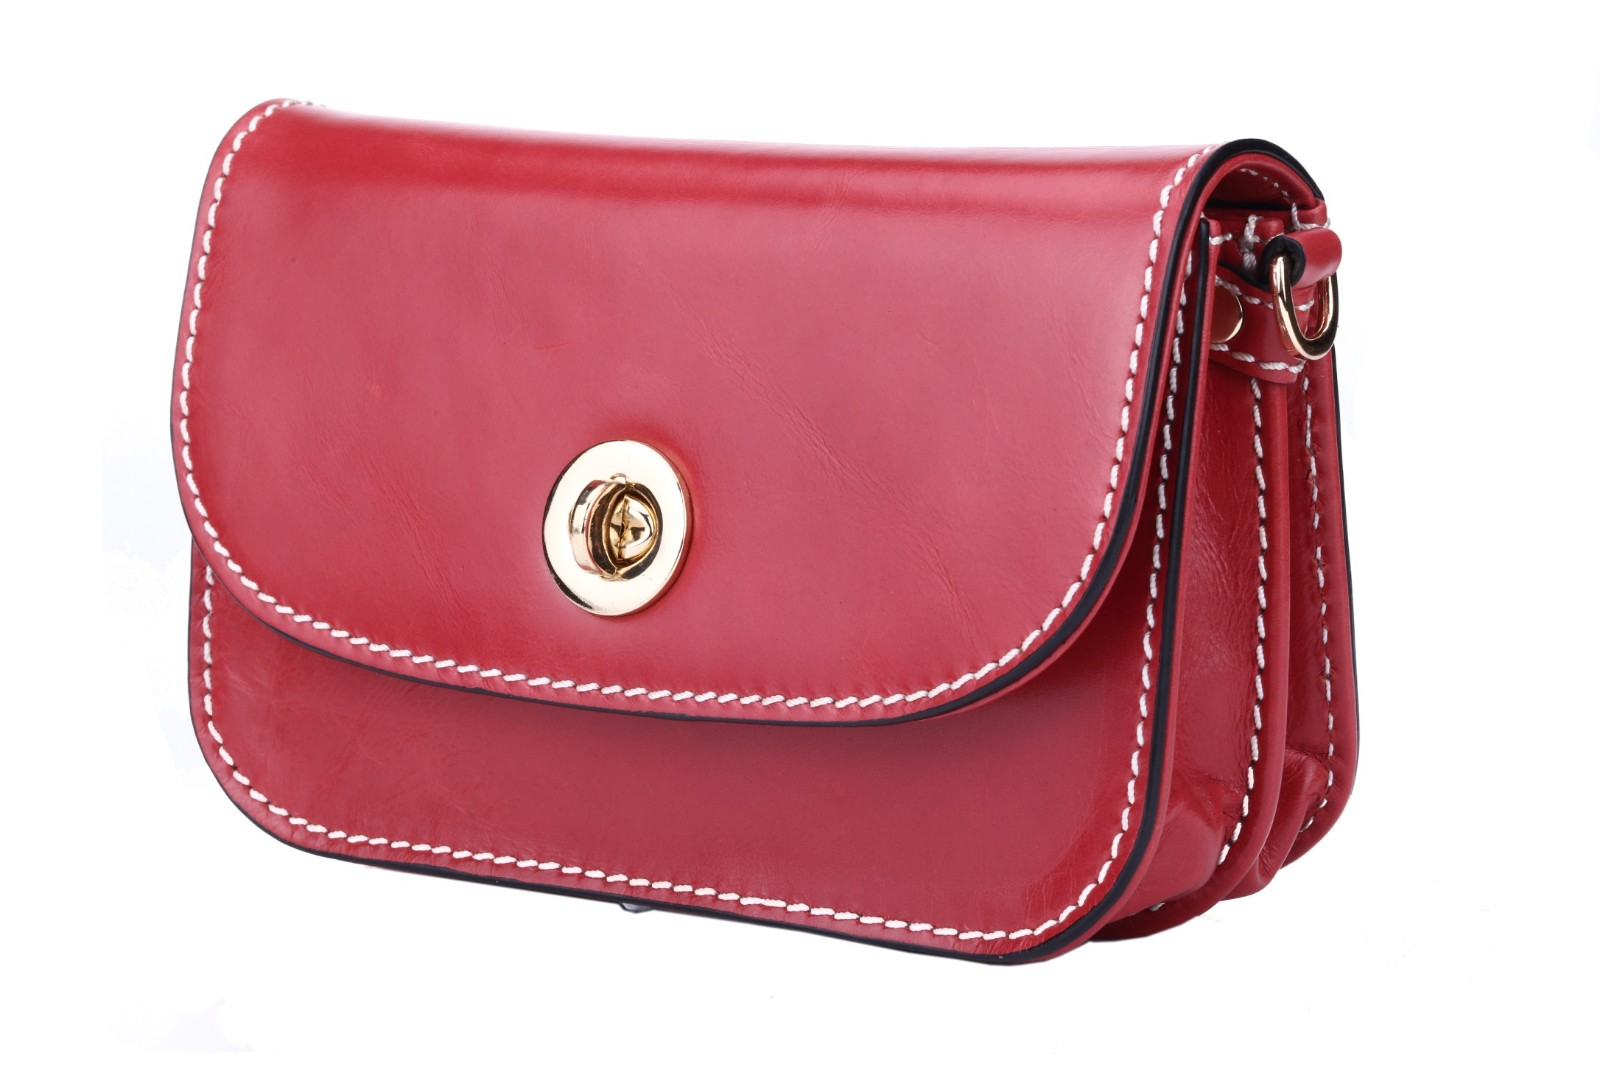 GF bags long cheap clutch bags check now for women-10